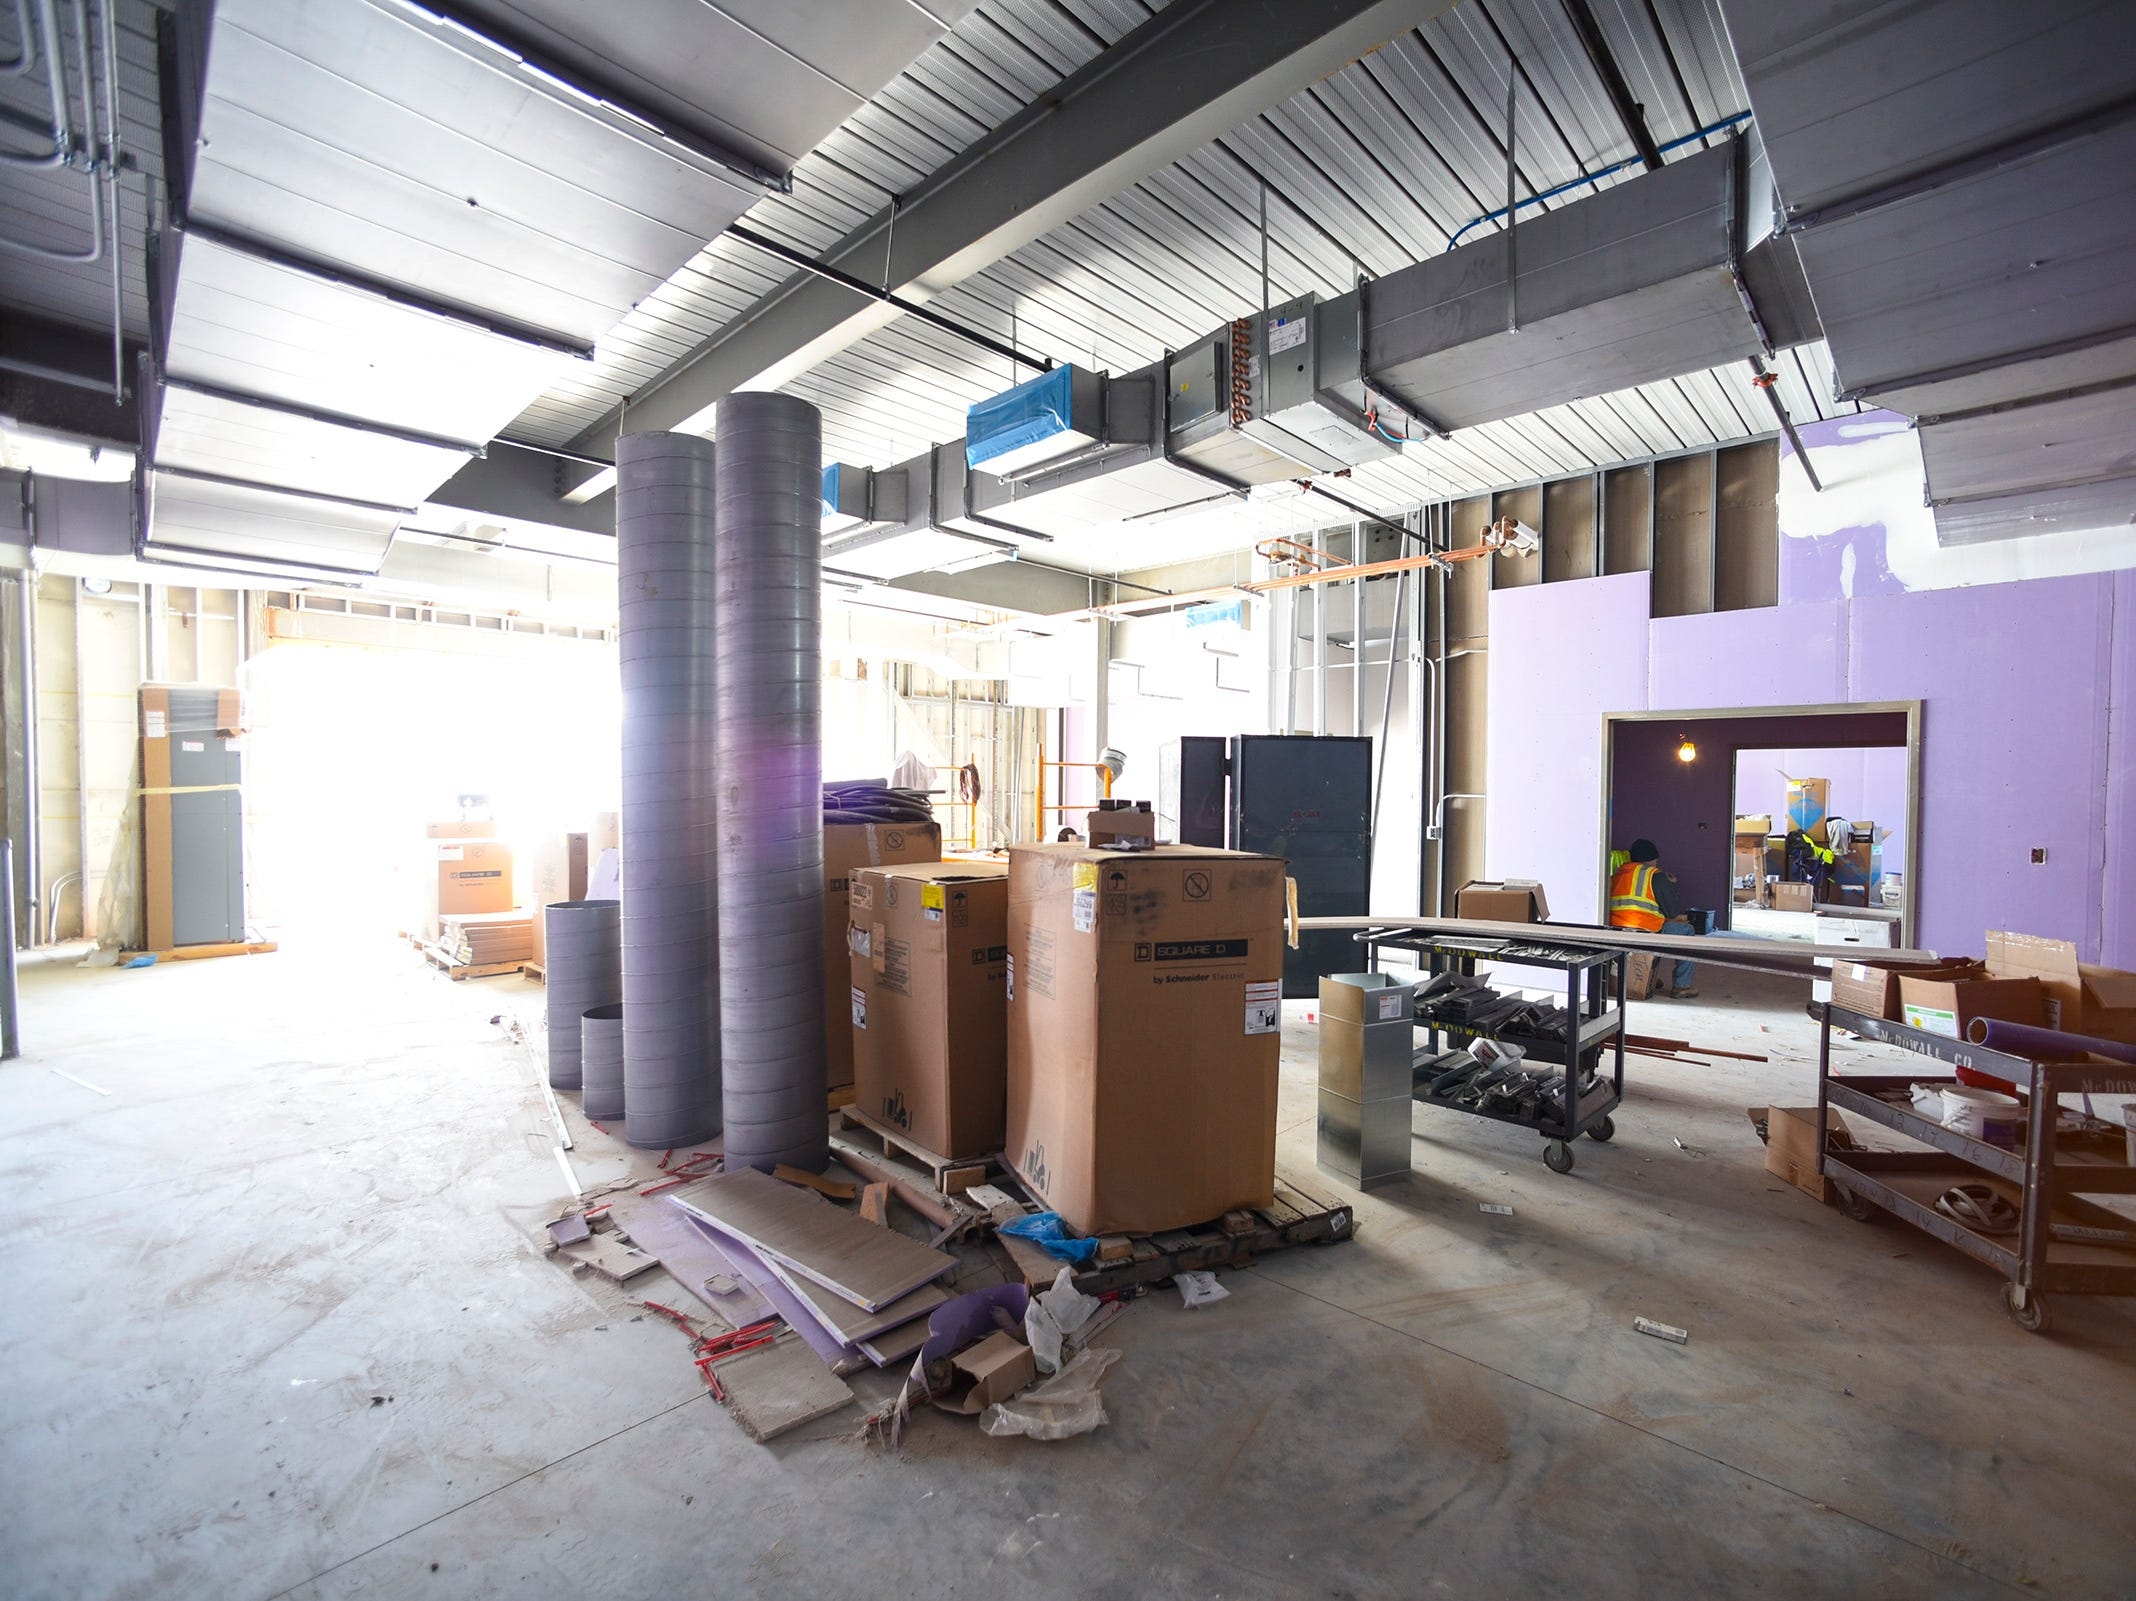 Work continues on one of the fabrication labs Thursday, Nov. 1, at the new Tech High School.